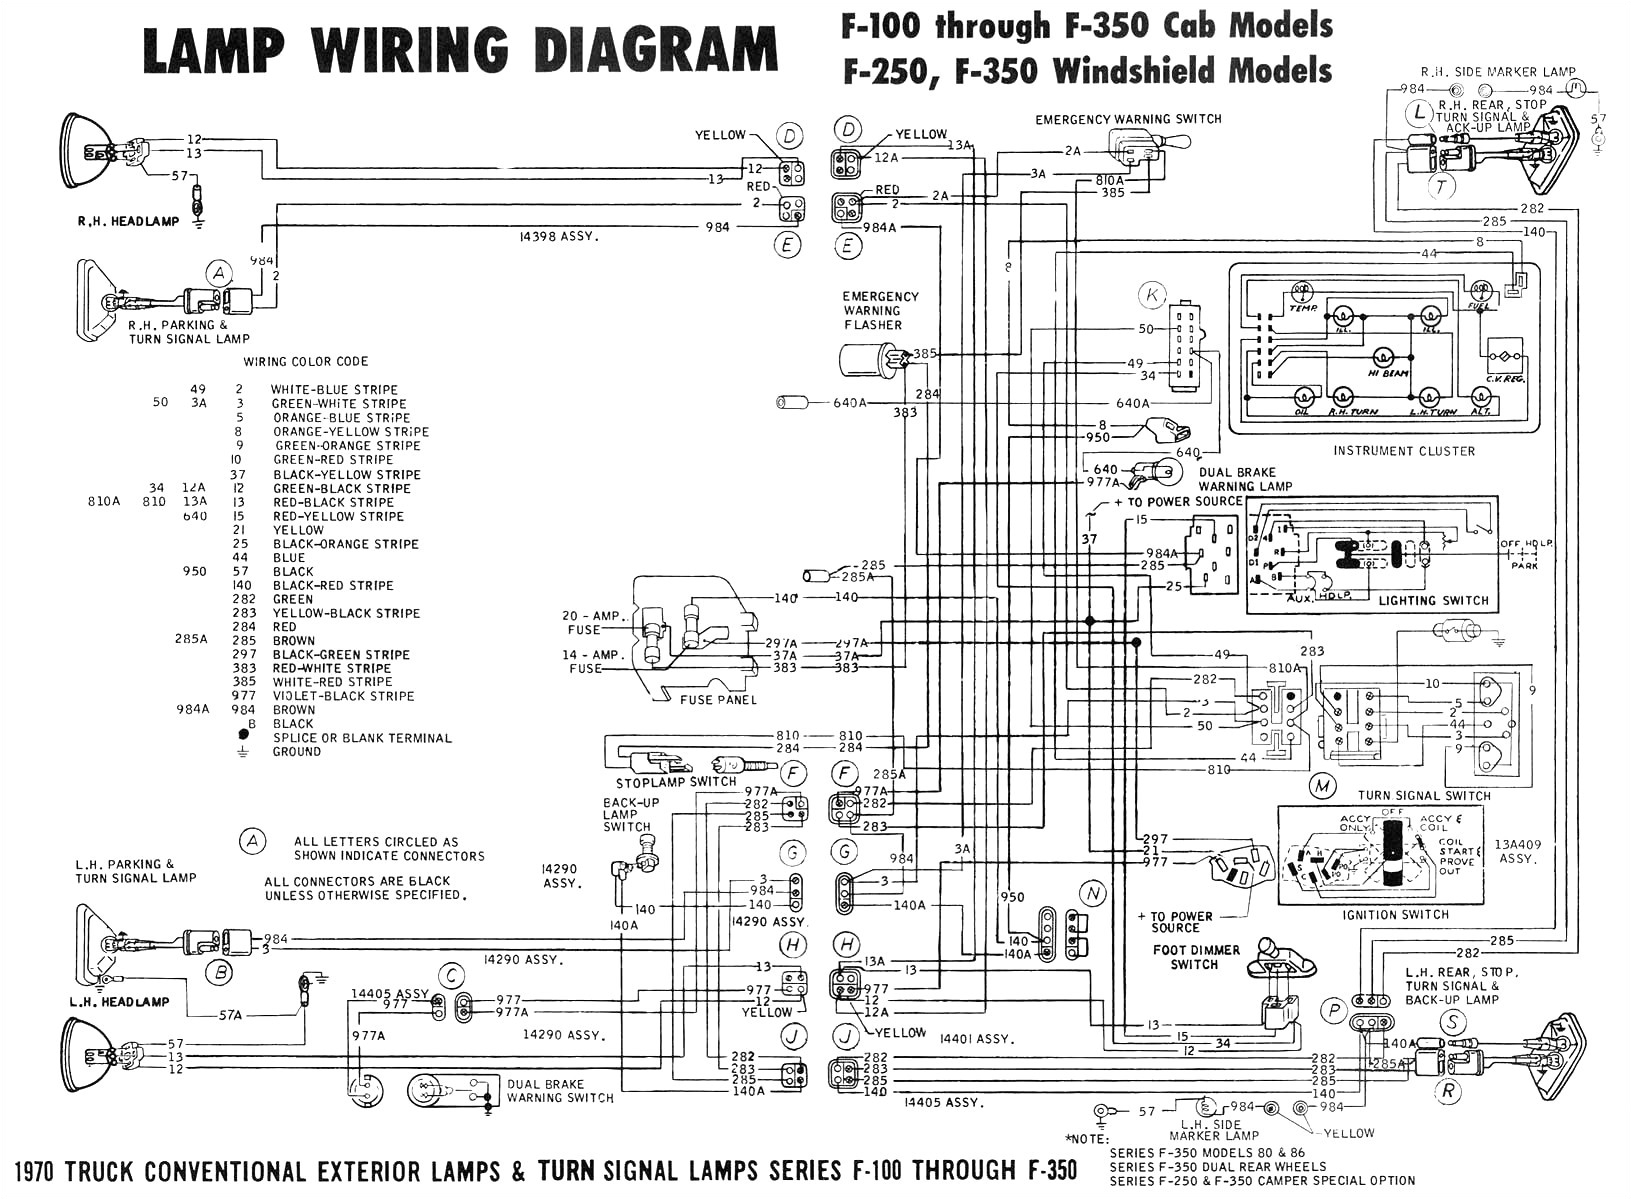 1991 ford f150 fuse box location wiring diagrams konsult 1991 ford explorer xlt fuse diagram